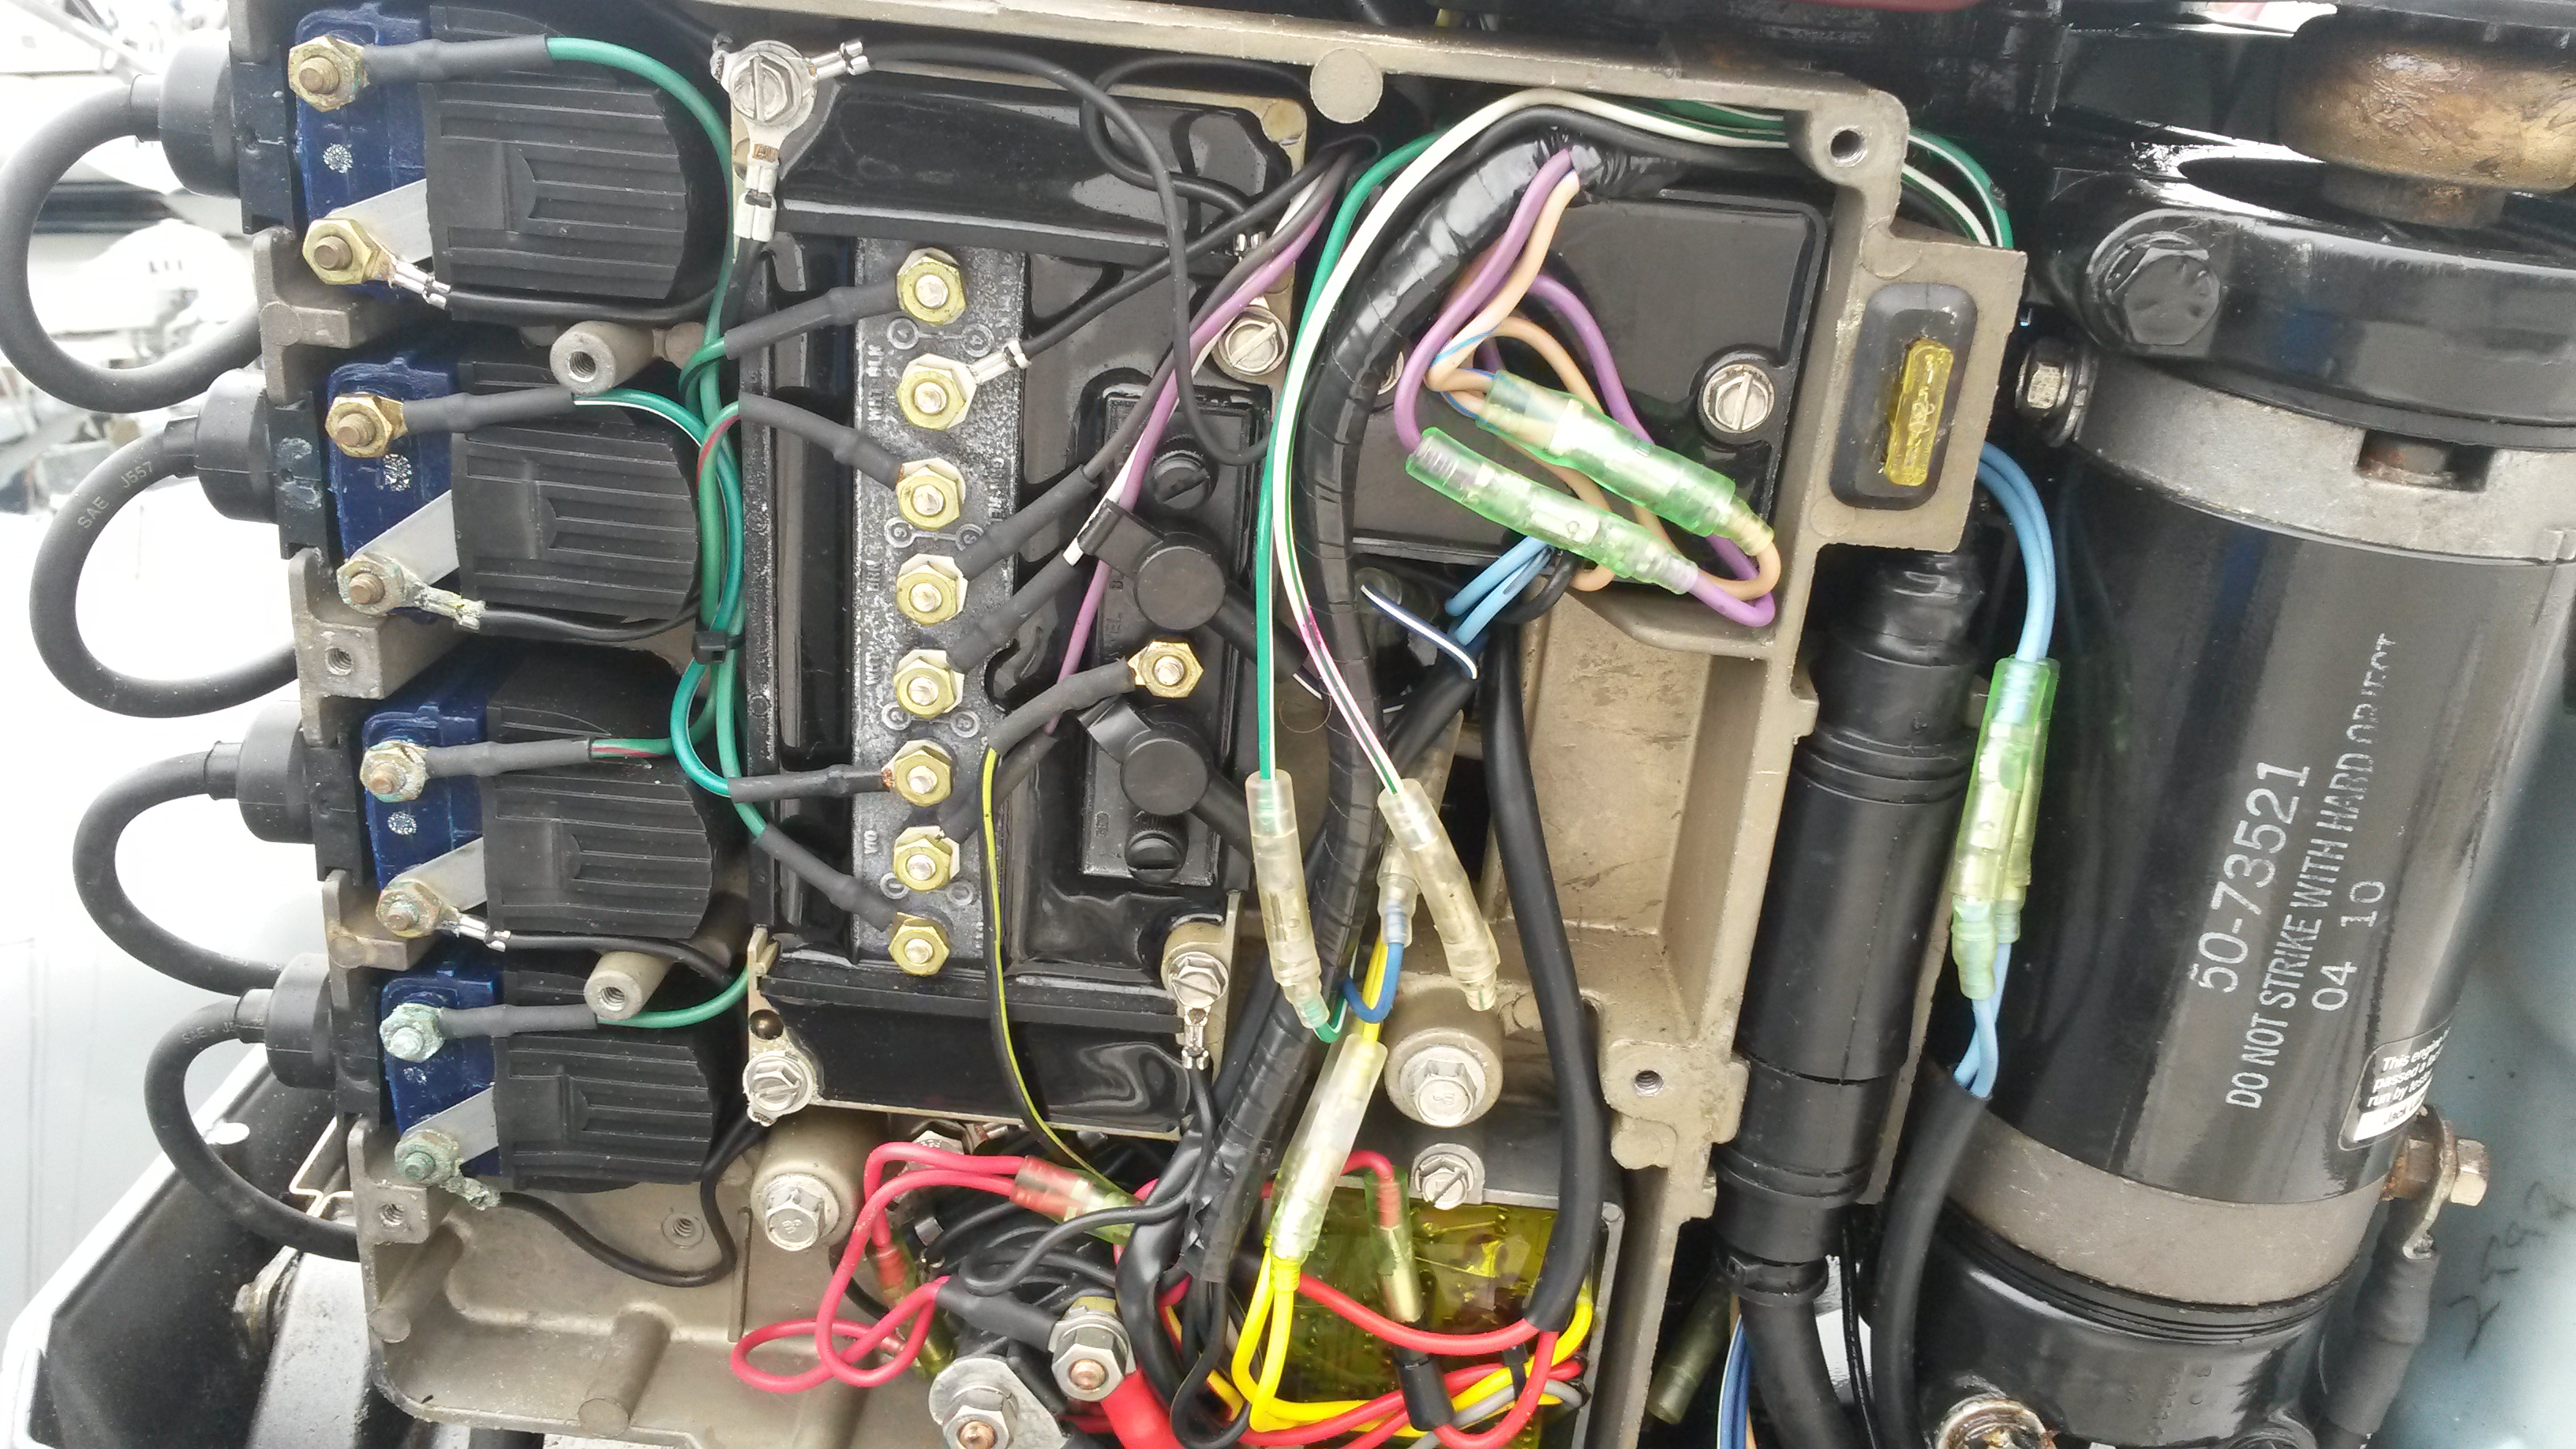 Timing Belt Tensioner additionally Parts furthermore 7xfql Mercury Mariner C40elo Recently 40 Hp Mariner Elo moreover 2013 Ford Focus Se Ecoboost 1 6 013 as well Intertherm Sequencer Wiring Diagram. on honda thermostat diagram